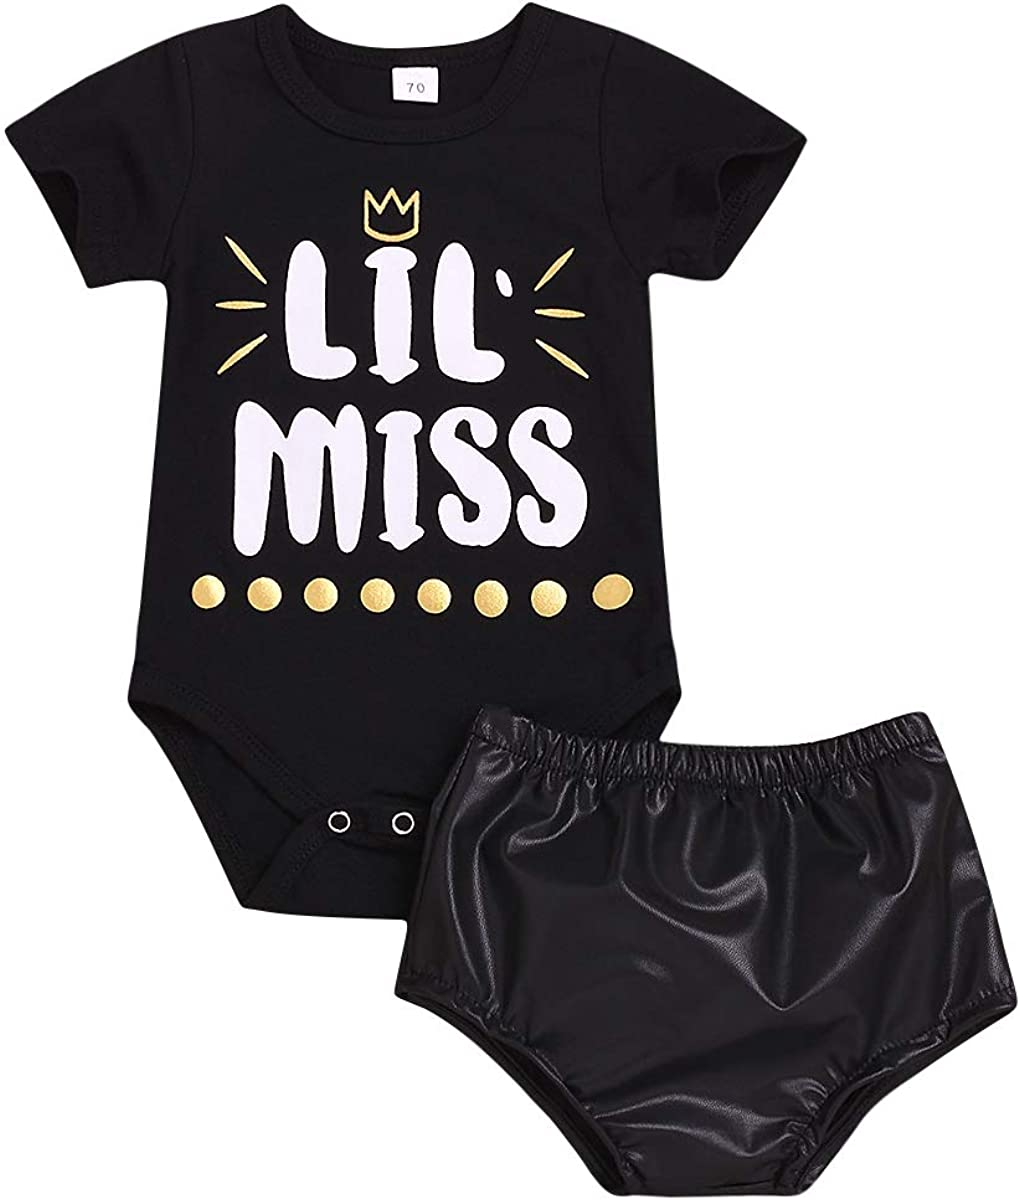 Baby Girls Big Little Sister Matching Outfits Short Sleeve Shirt Top PU Shorts Set